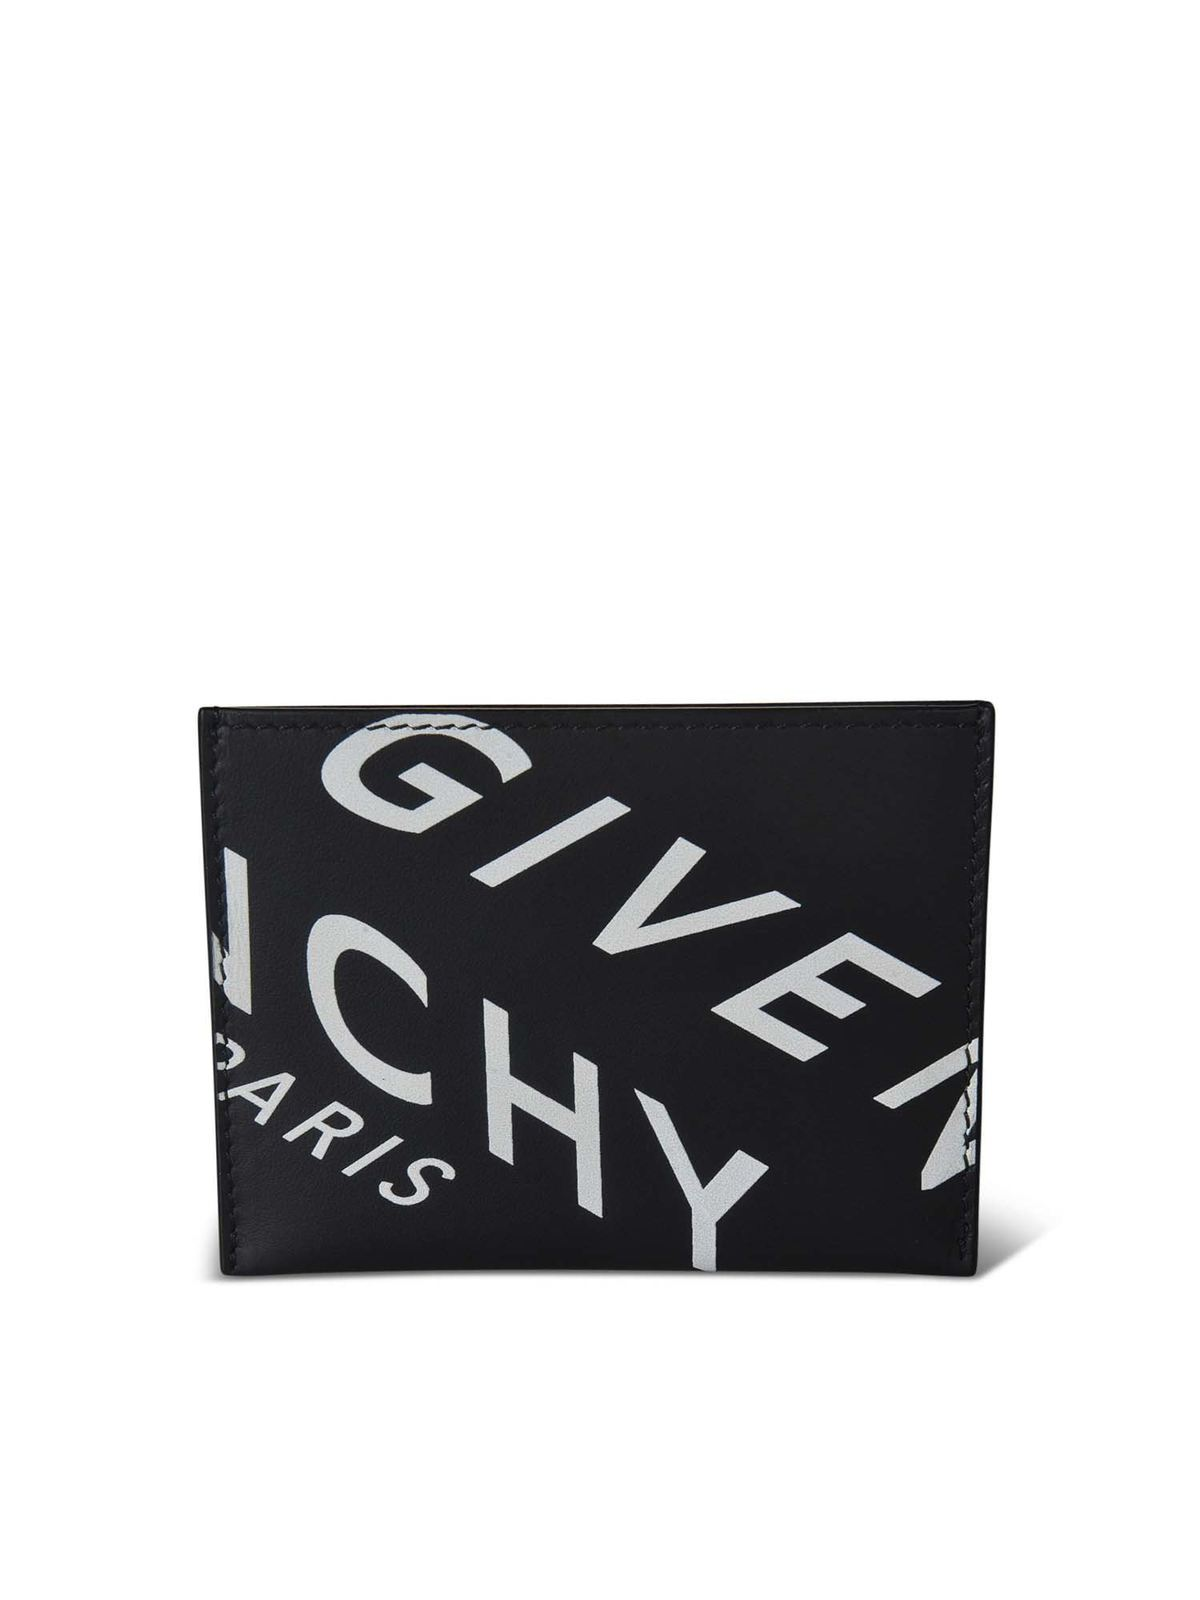 GIVENCHY GIVENCHY REFRACTED BLACK CARD HOLDER